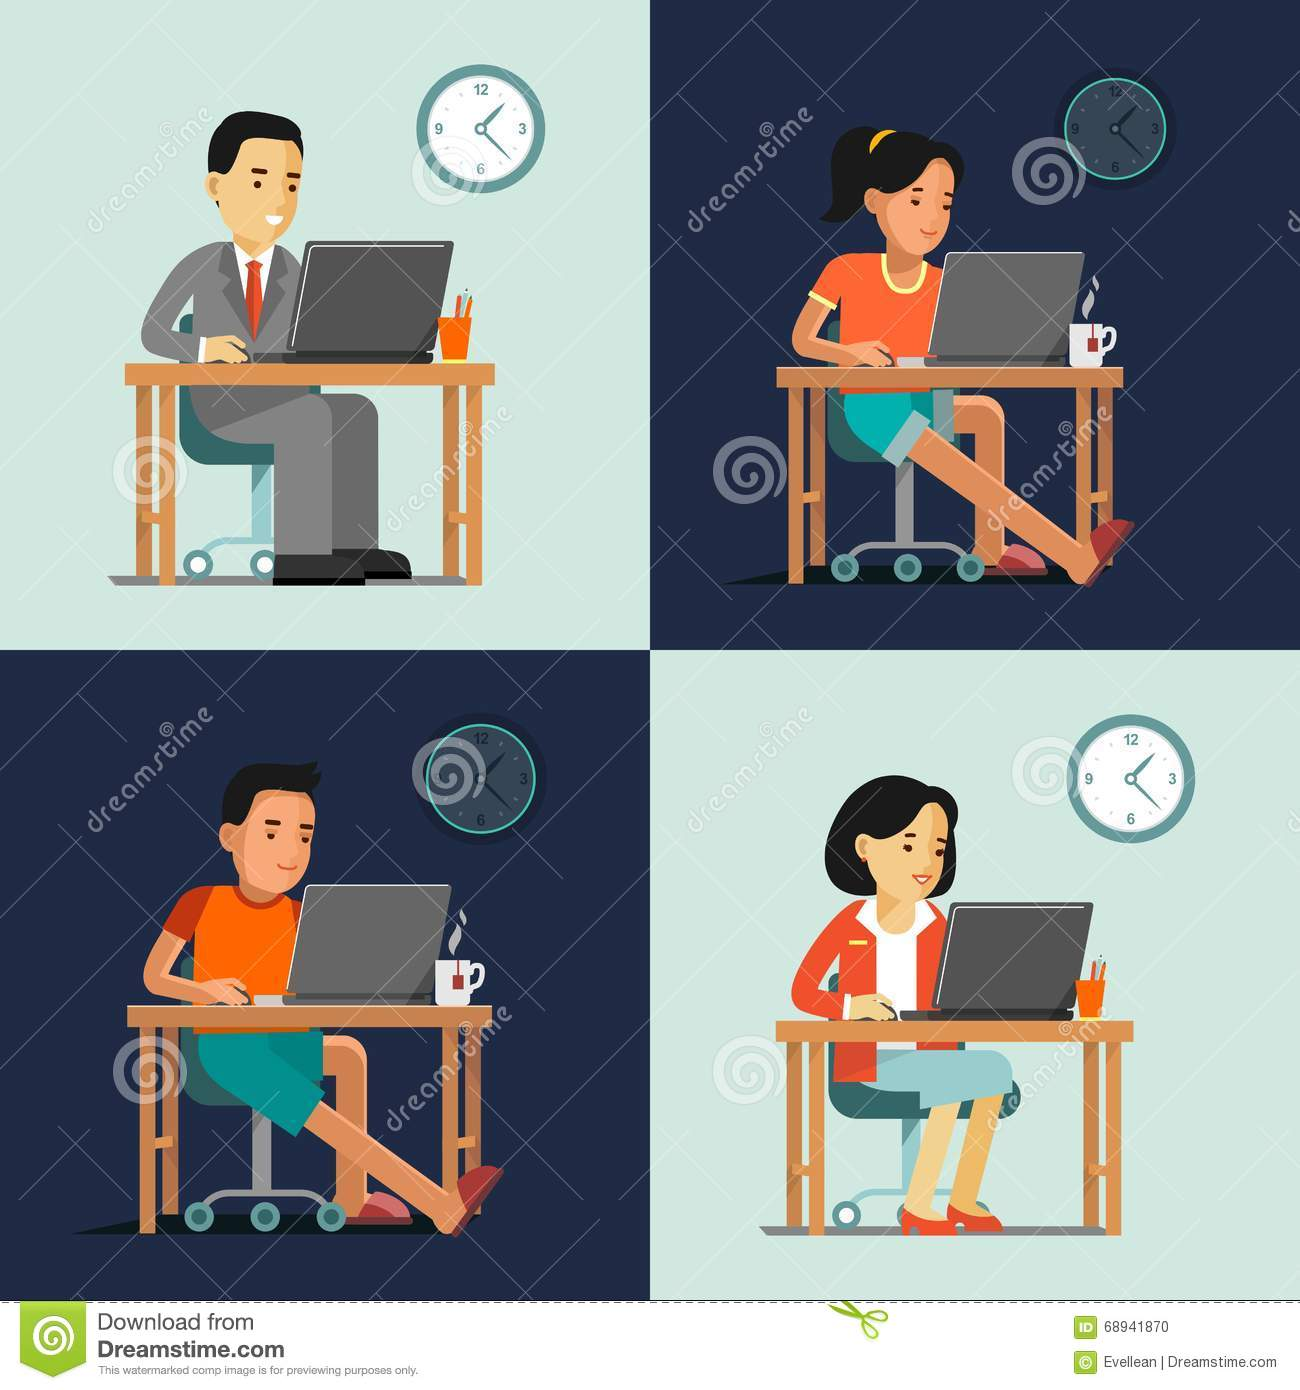 Computer Internet Work Concept With People In Office And